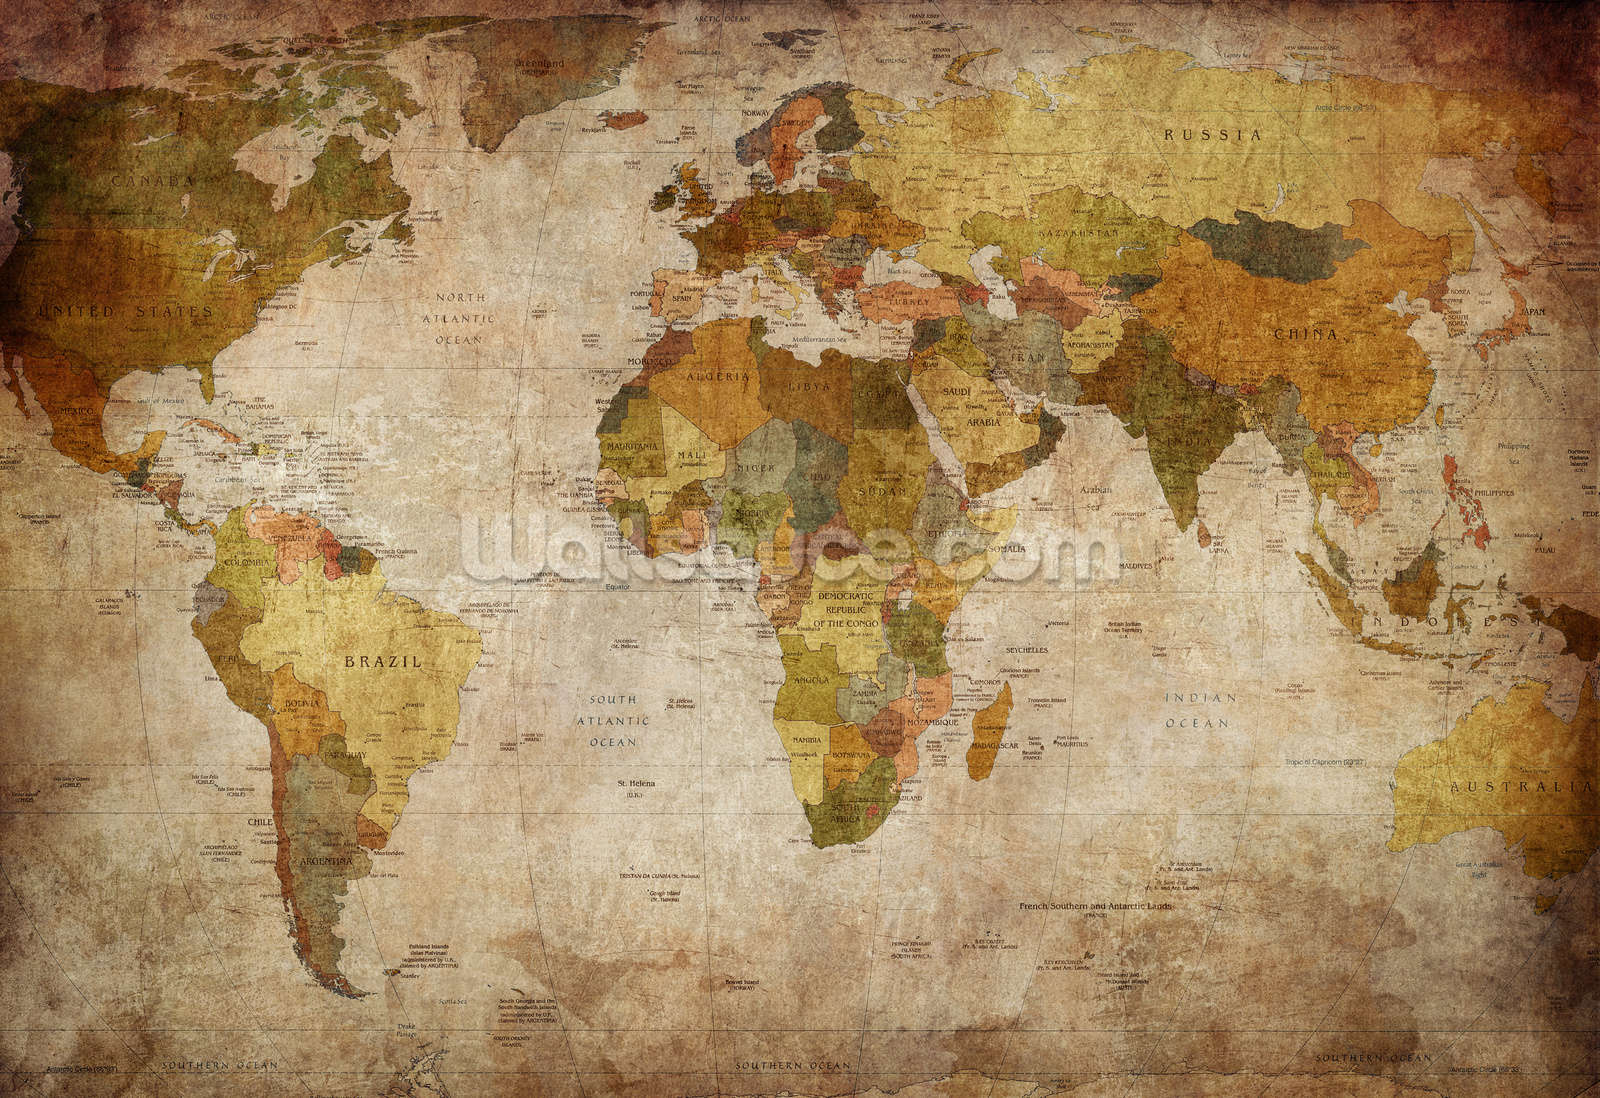 Old style world map wallpaper wall mural wallsauce uk old style world map wall mural gumiabroncs Images